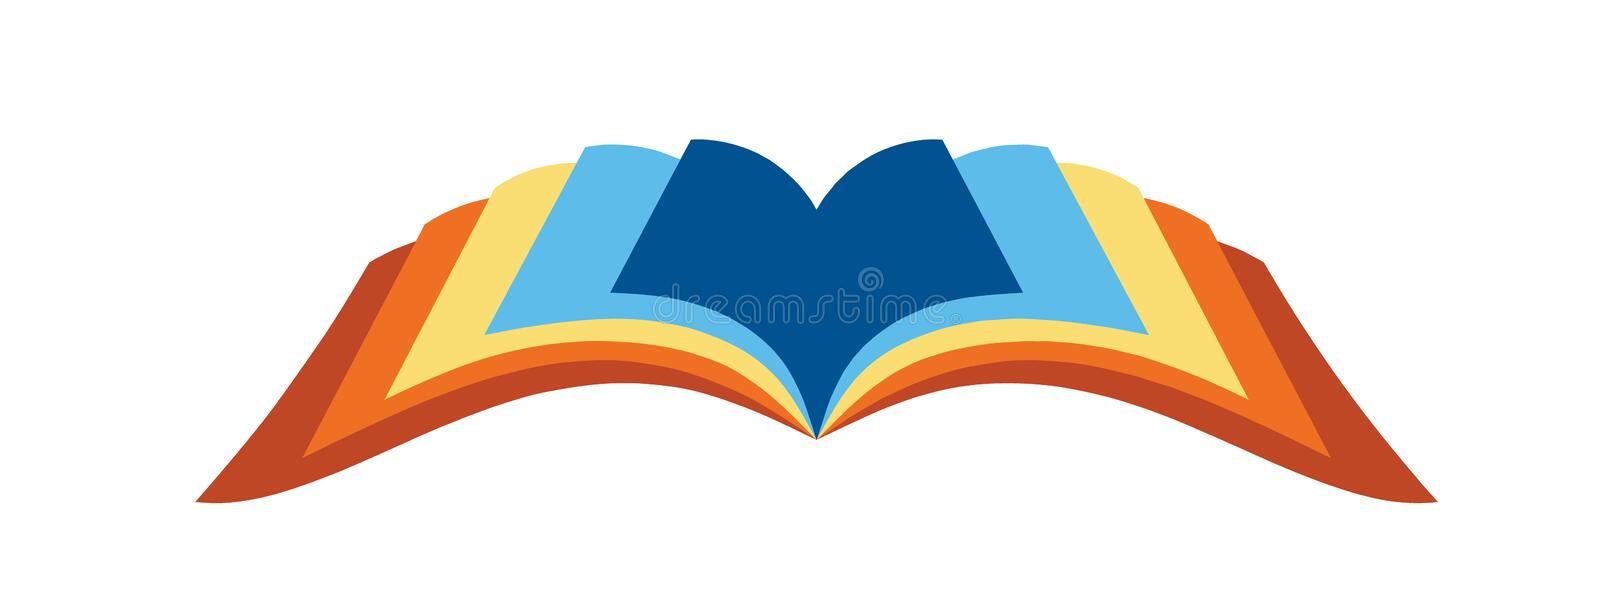 logo open book stock vector illustration of page diary 15347503 rh dreamstime com open book logo design open book logo images